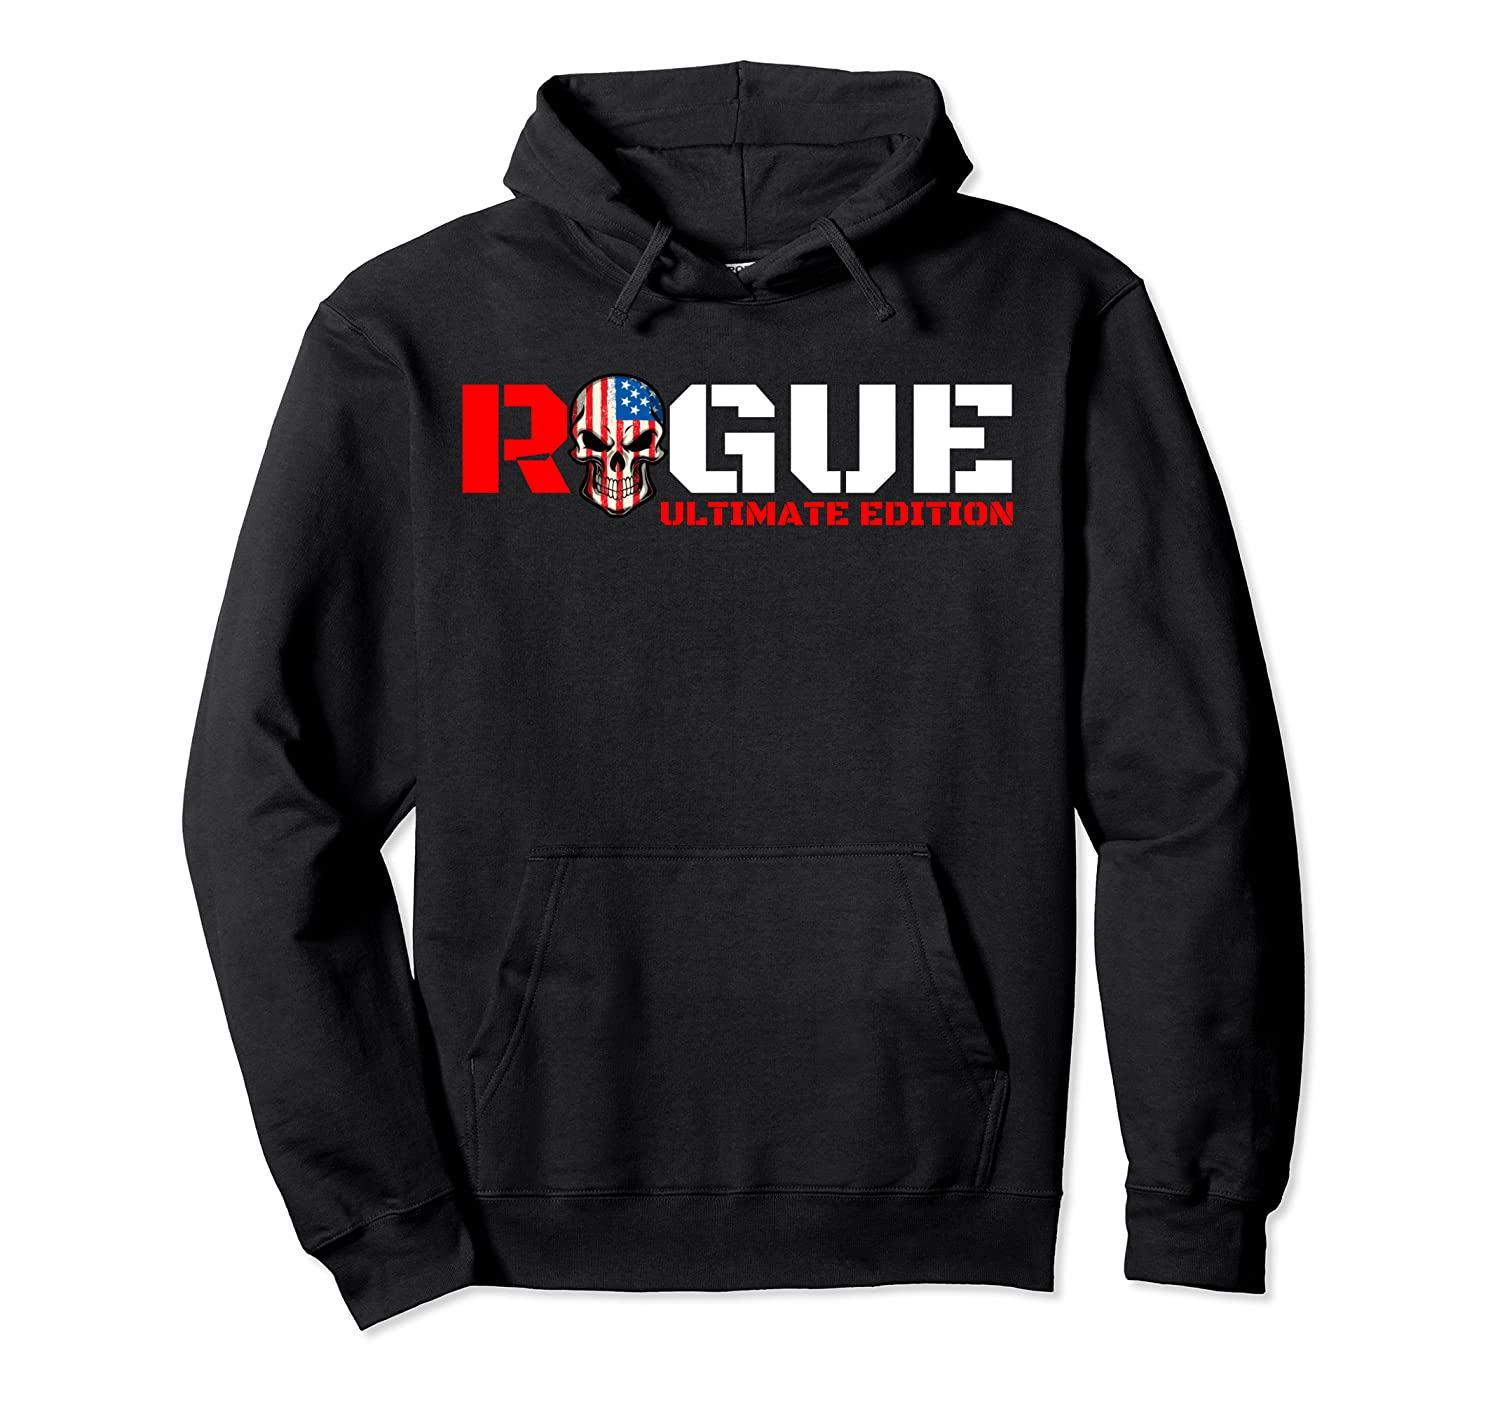 Rogue Cool Military Style Armed Forces Bad Boy Shirts Unisex Pullover Hoodie